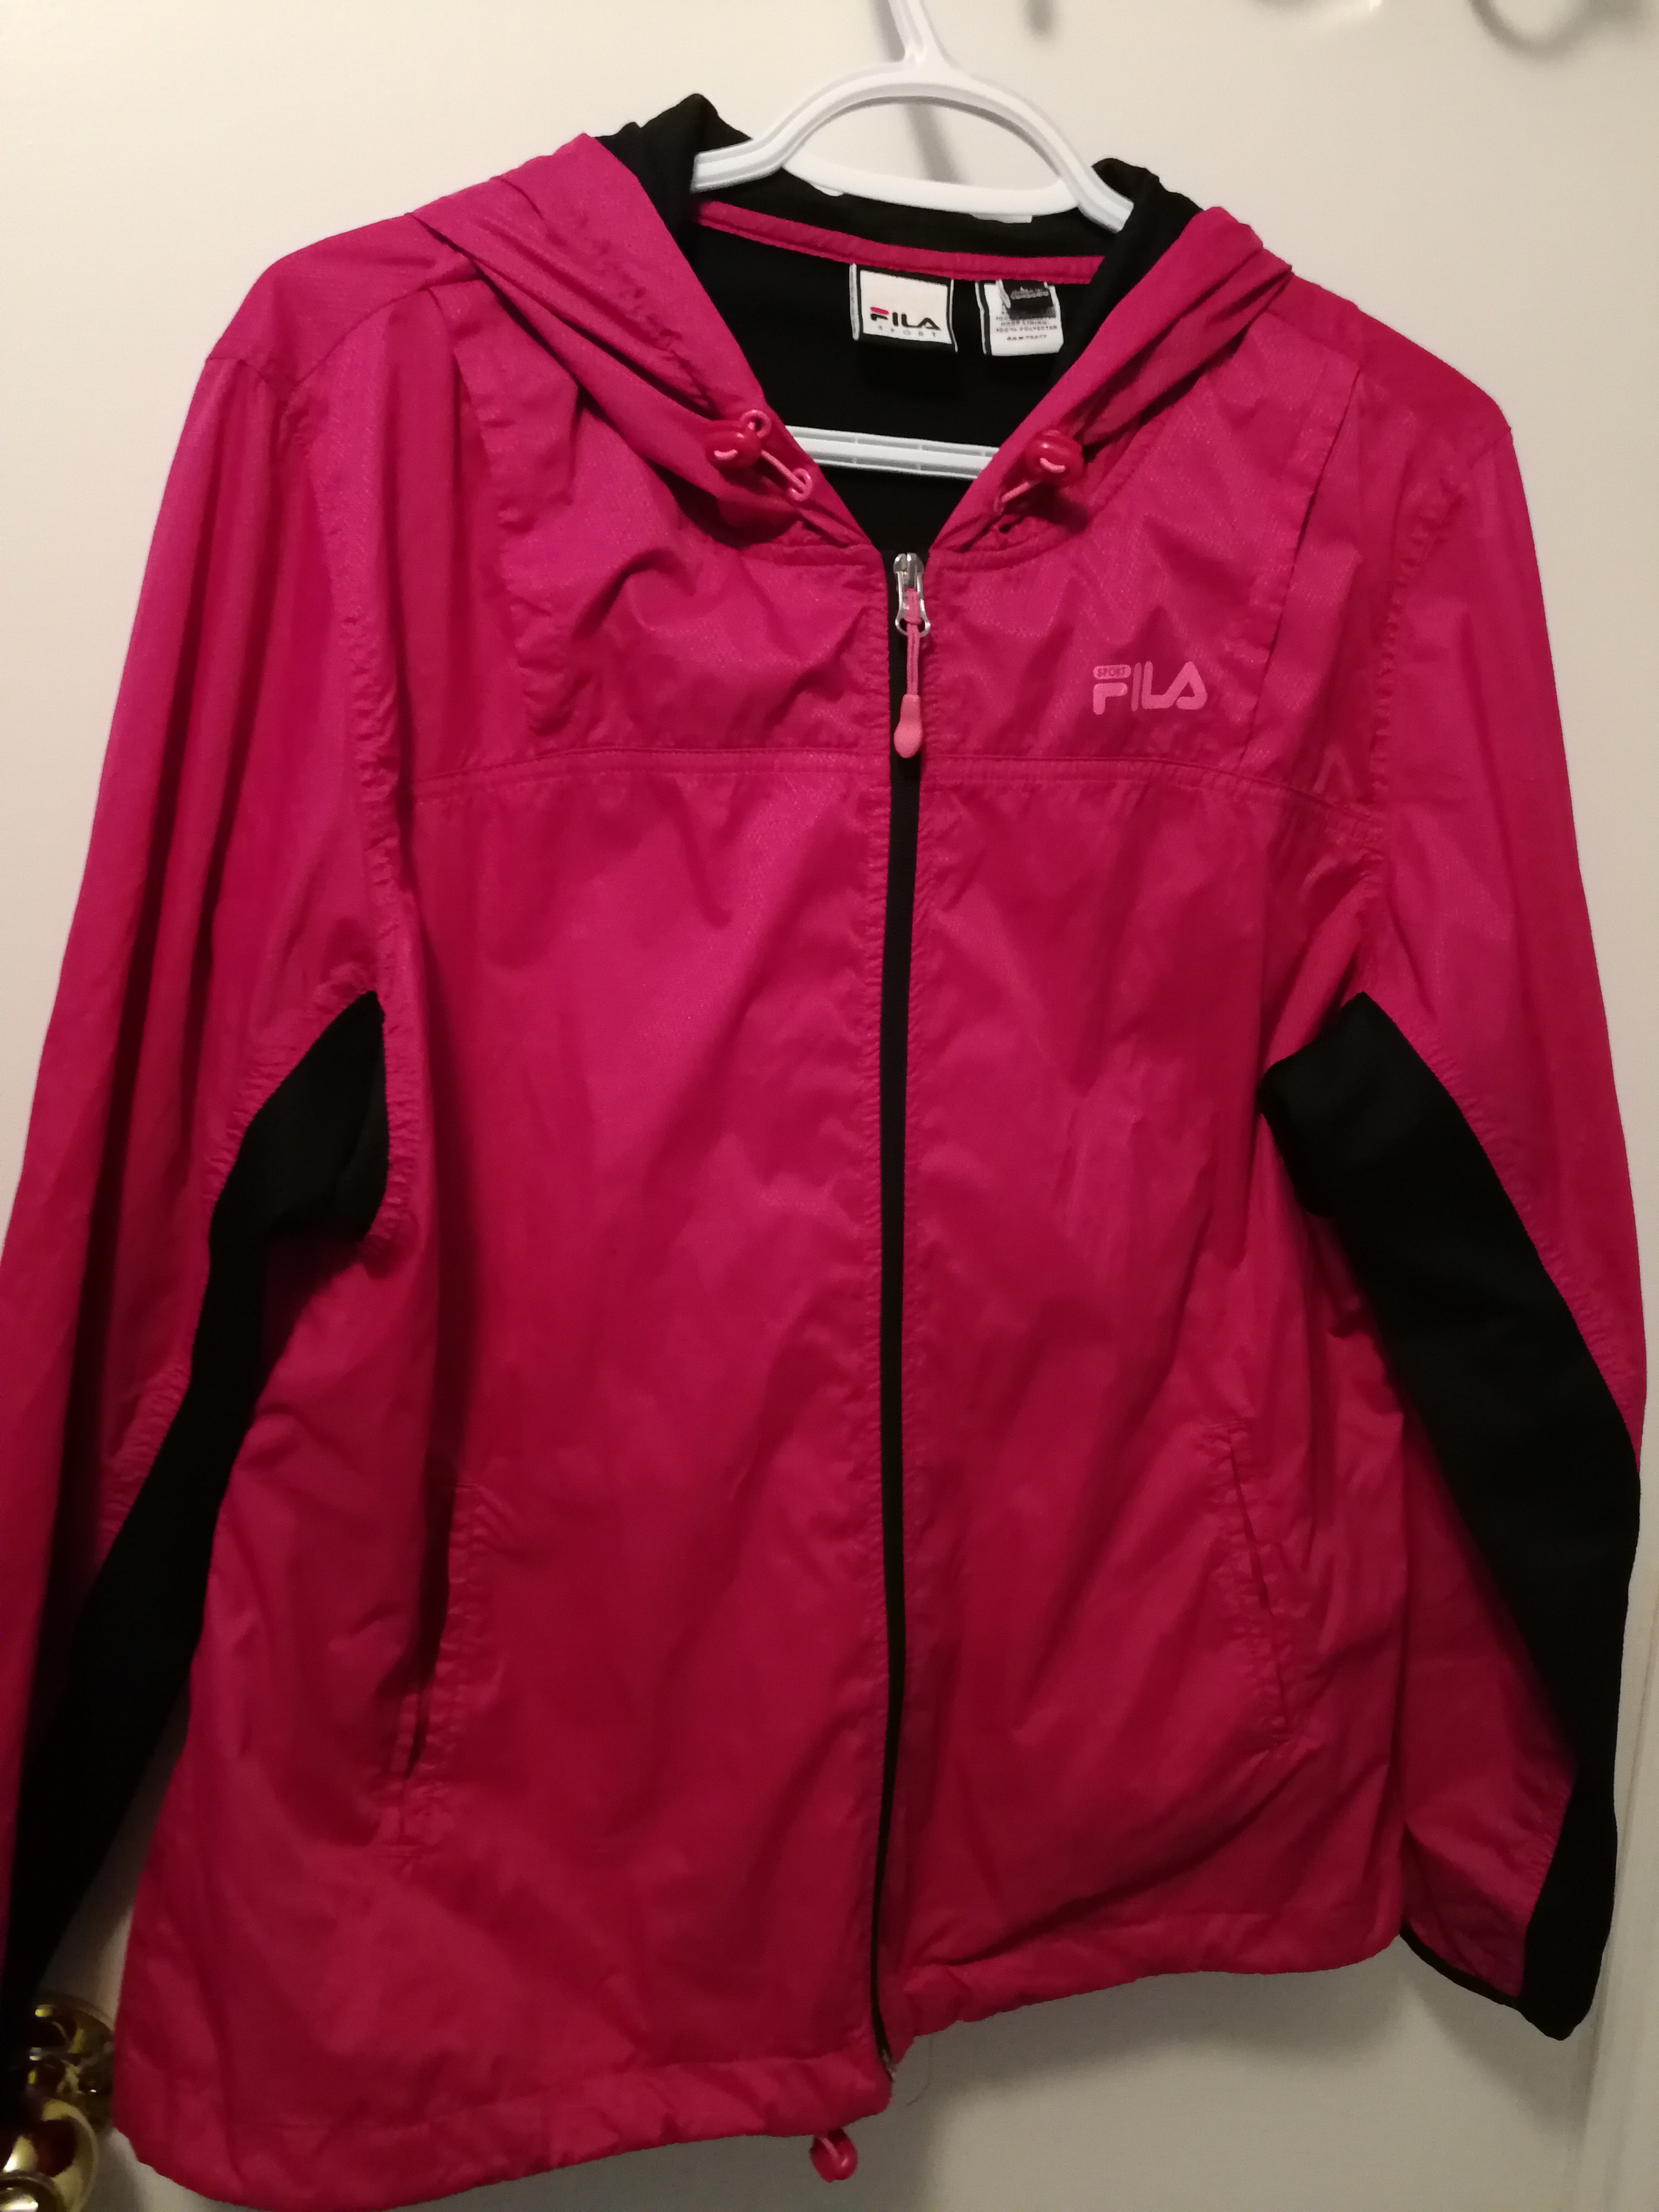 Fila pink windbreaker jacket womens large